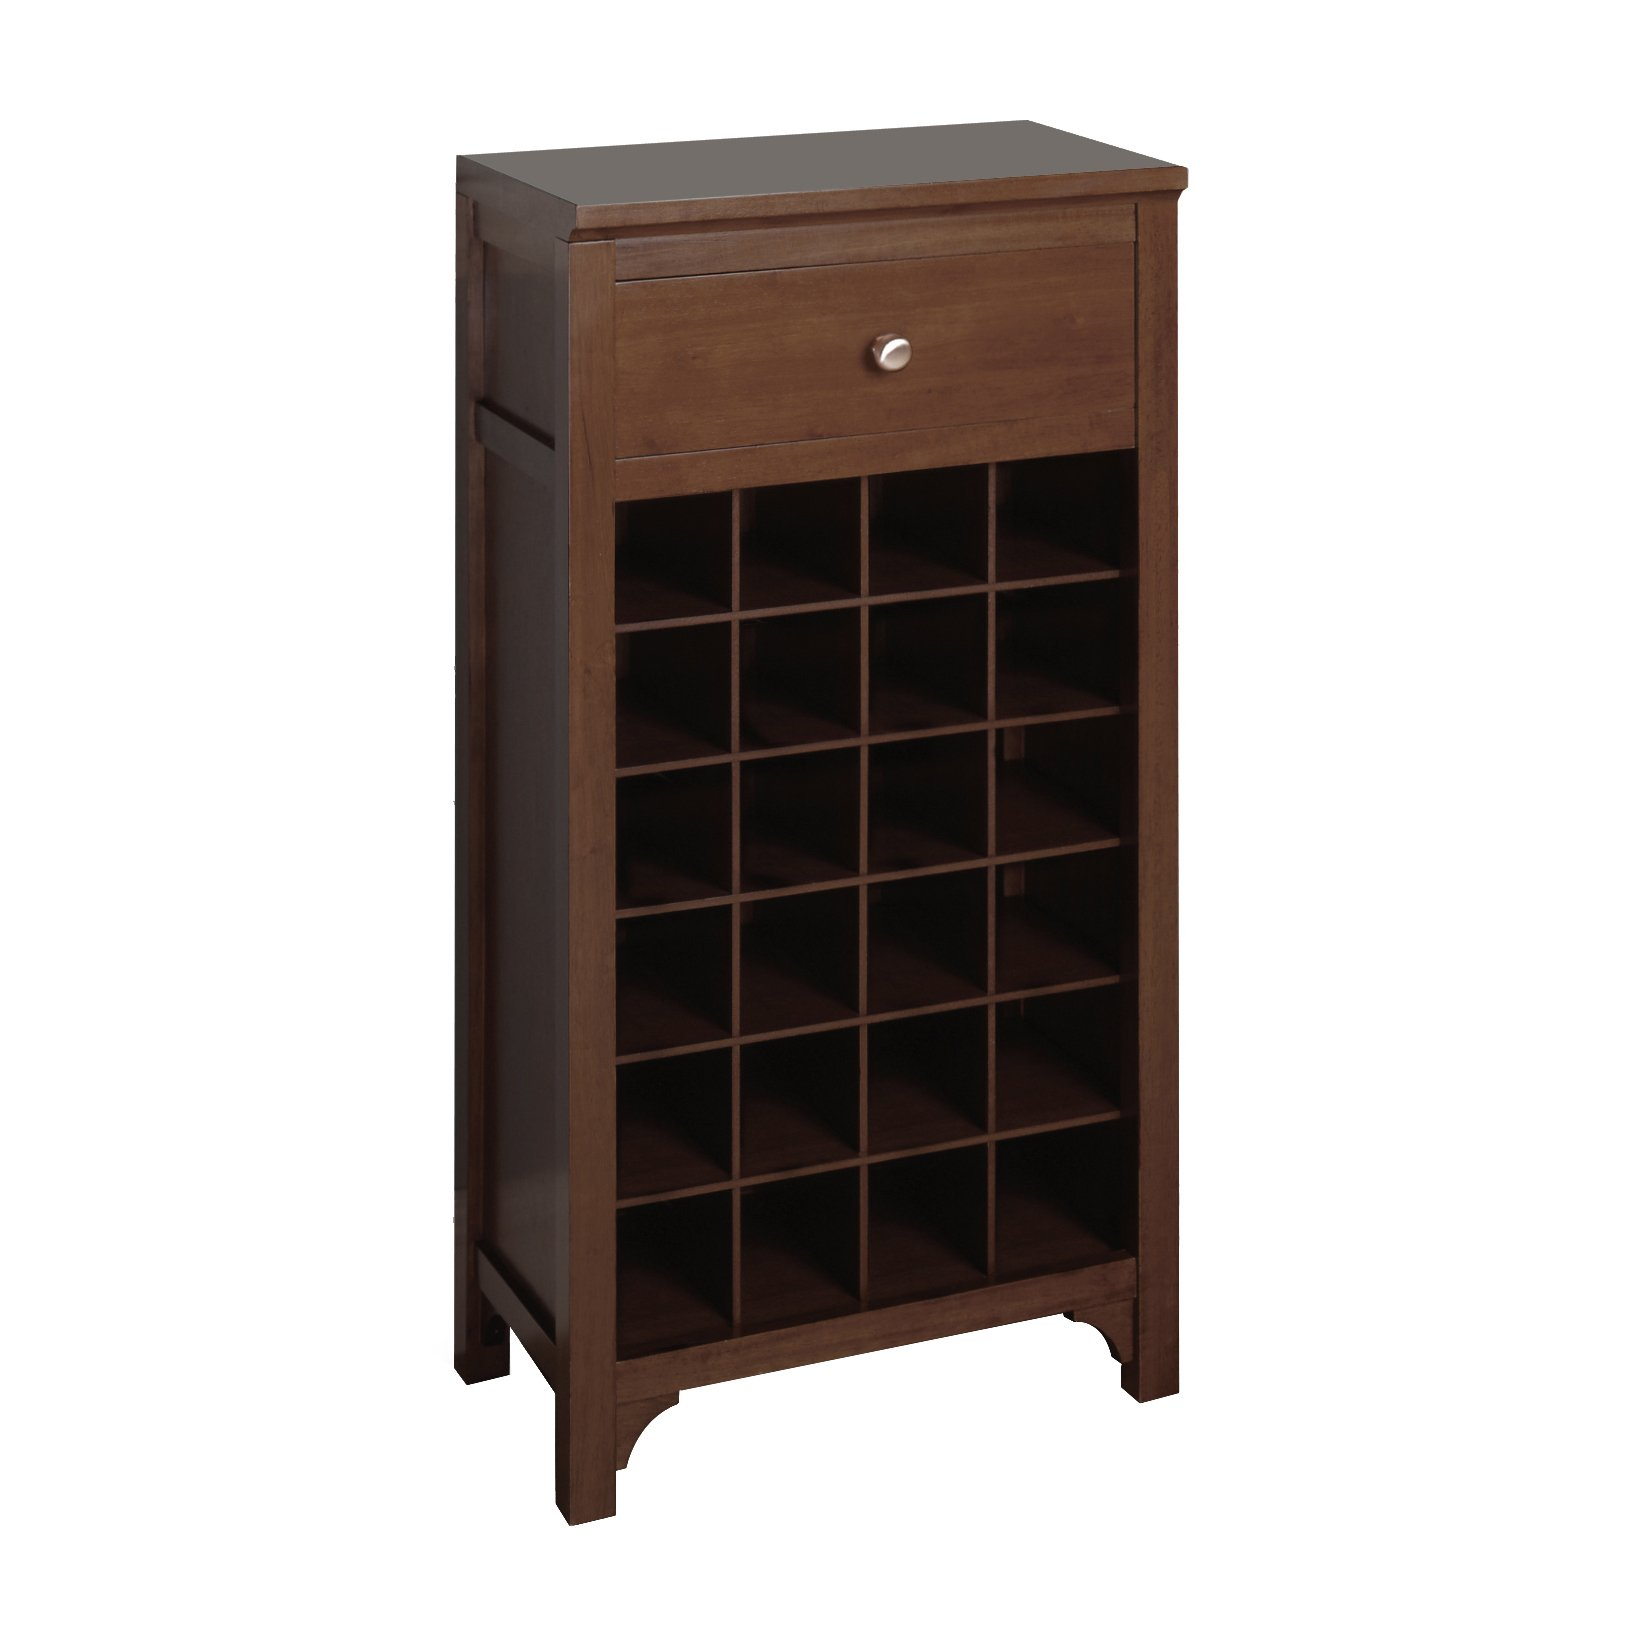 Winsome Trading Winsome Wood Wine Cabinet, Walnut by Winsome